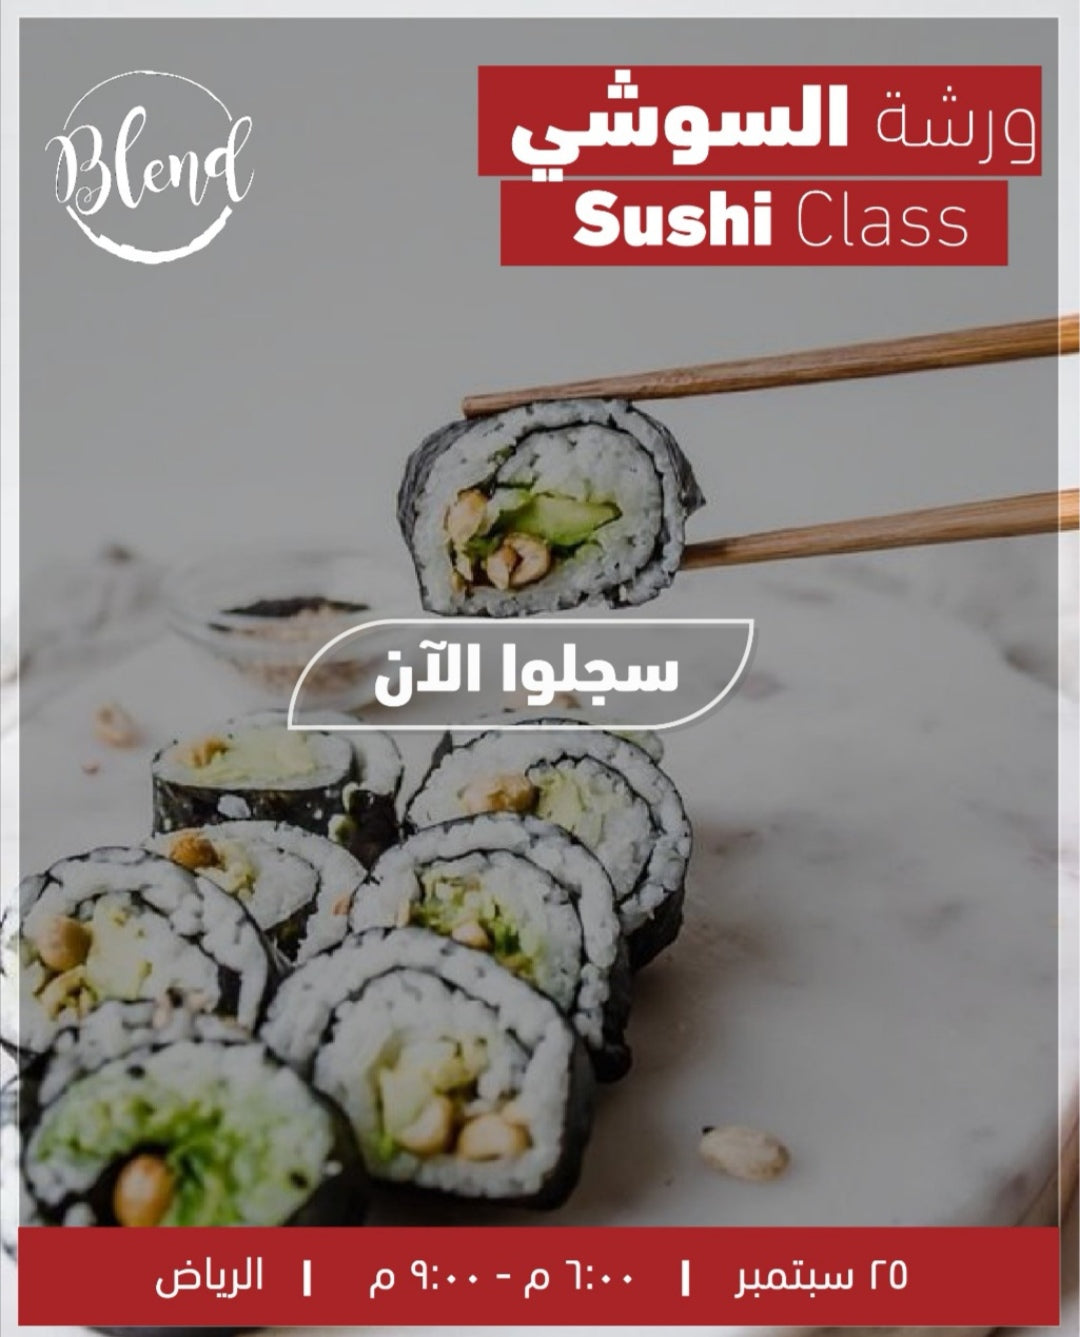 The Sushi Class (25 Sep 2019)